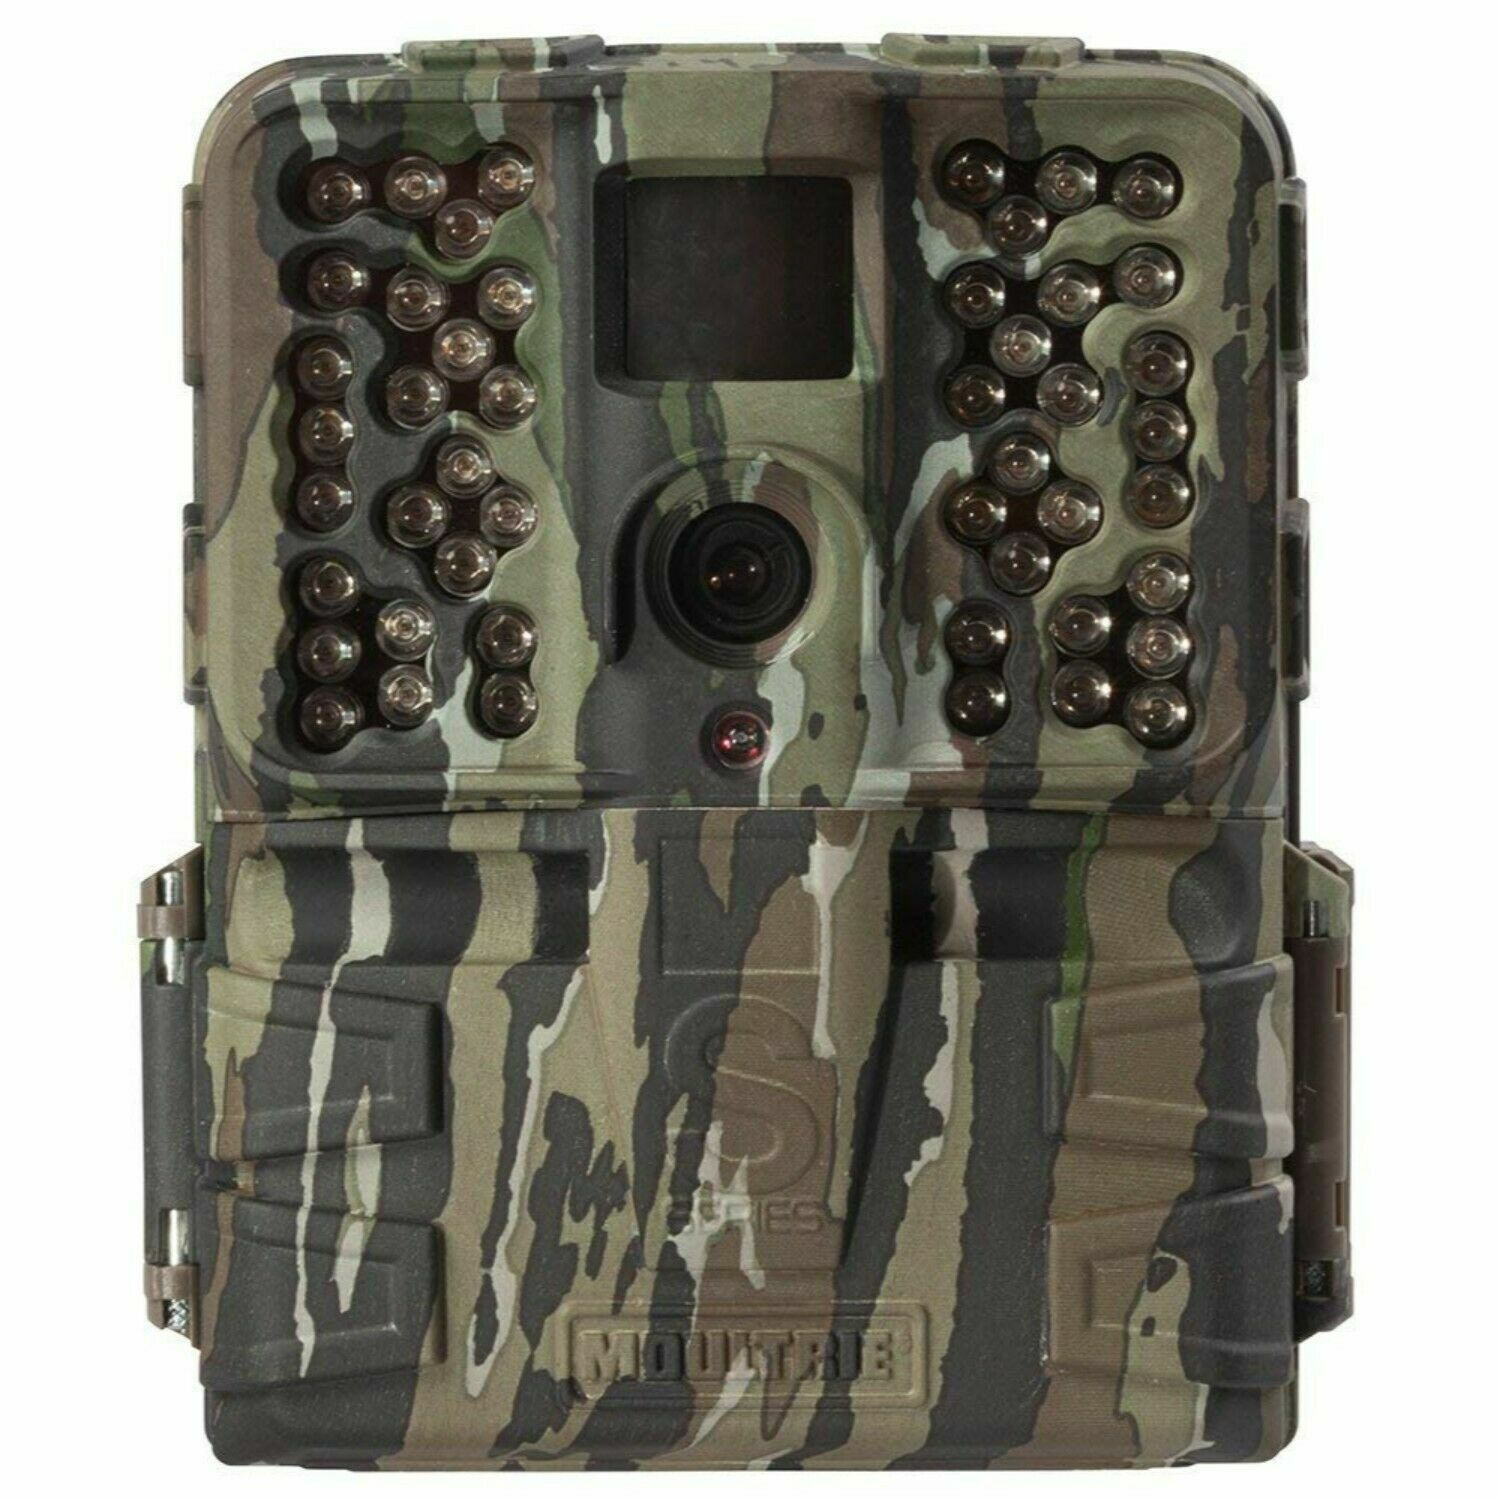 Moultrie S-50i Game Camera  | 20 MP | 0.3 S Trigger Speed |